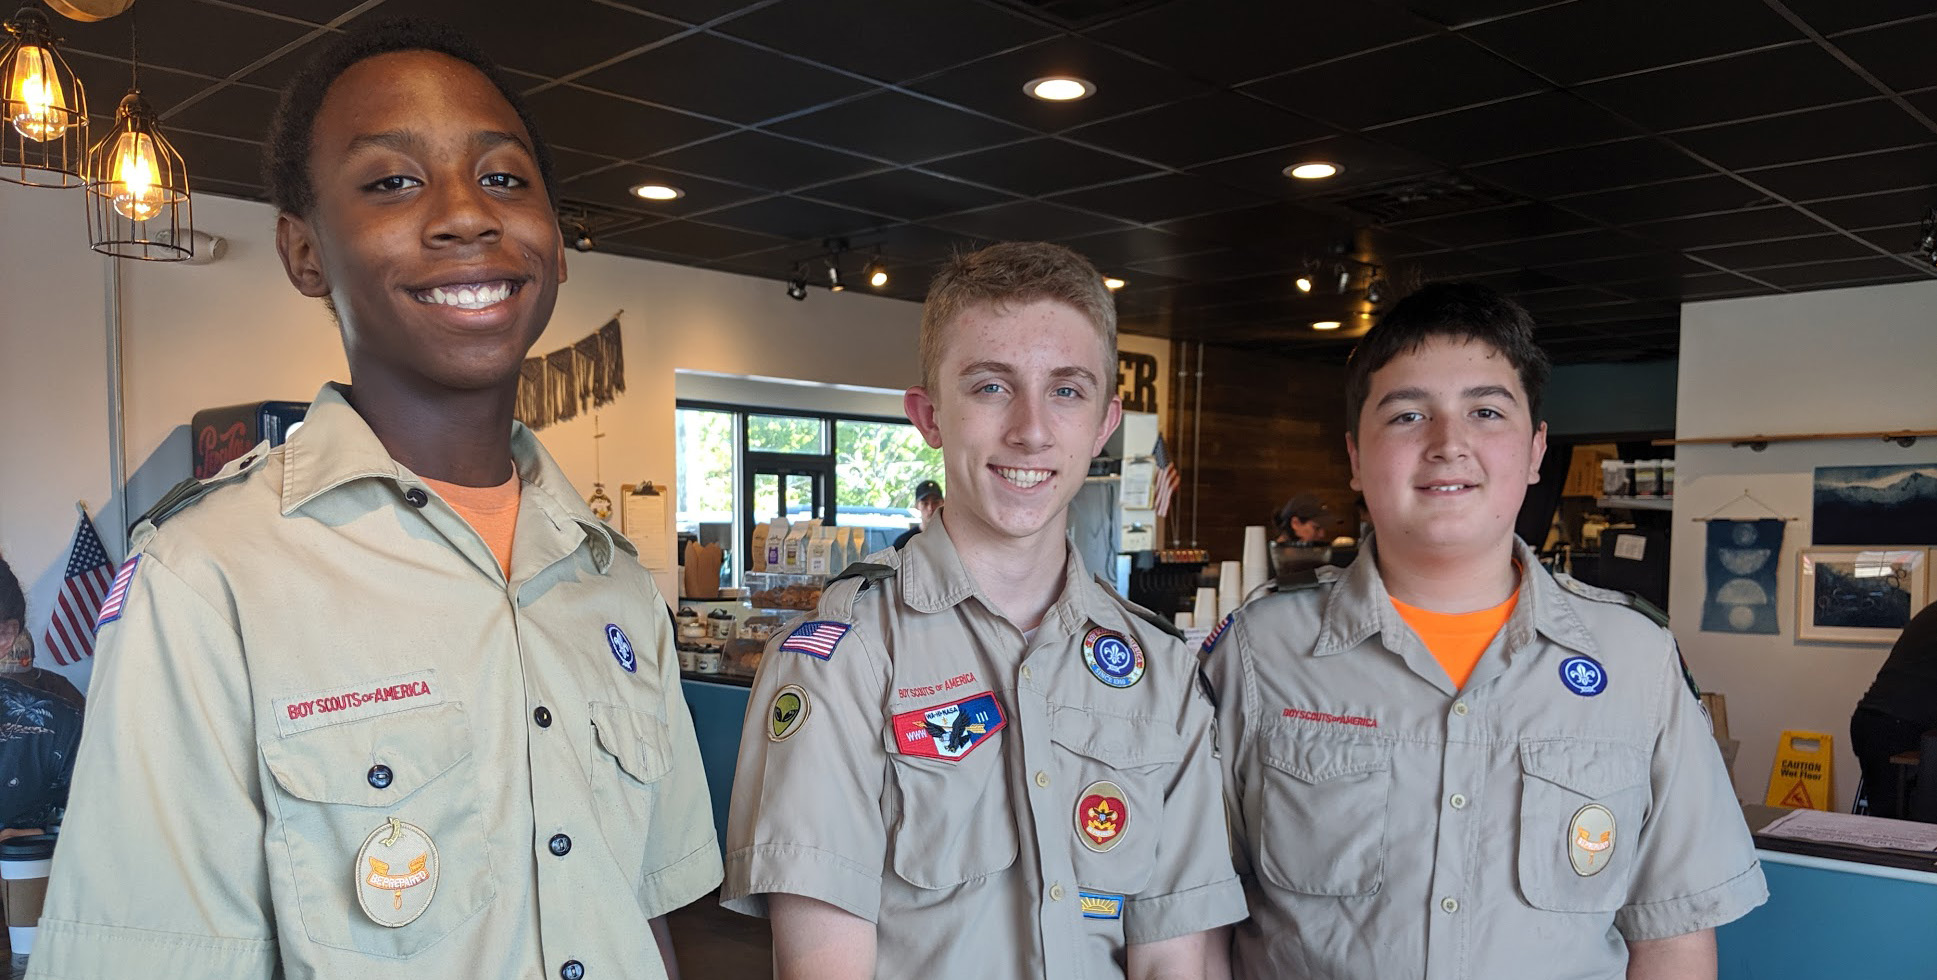 Austin (middle) and two of his helpers during the collection day at Caliber Coffee in September 2019.